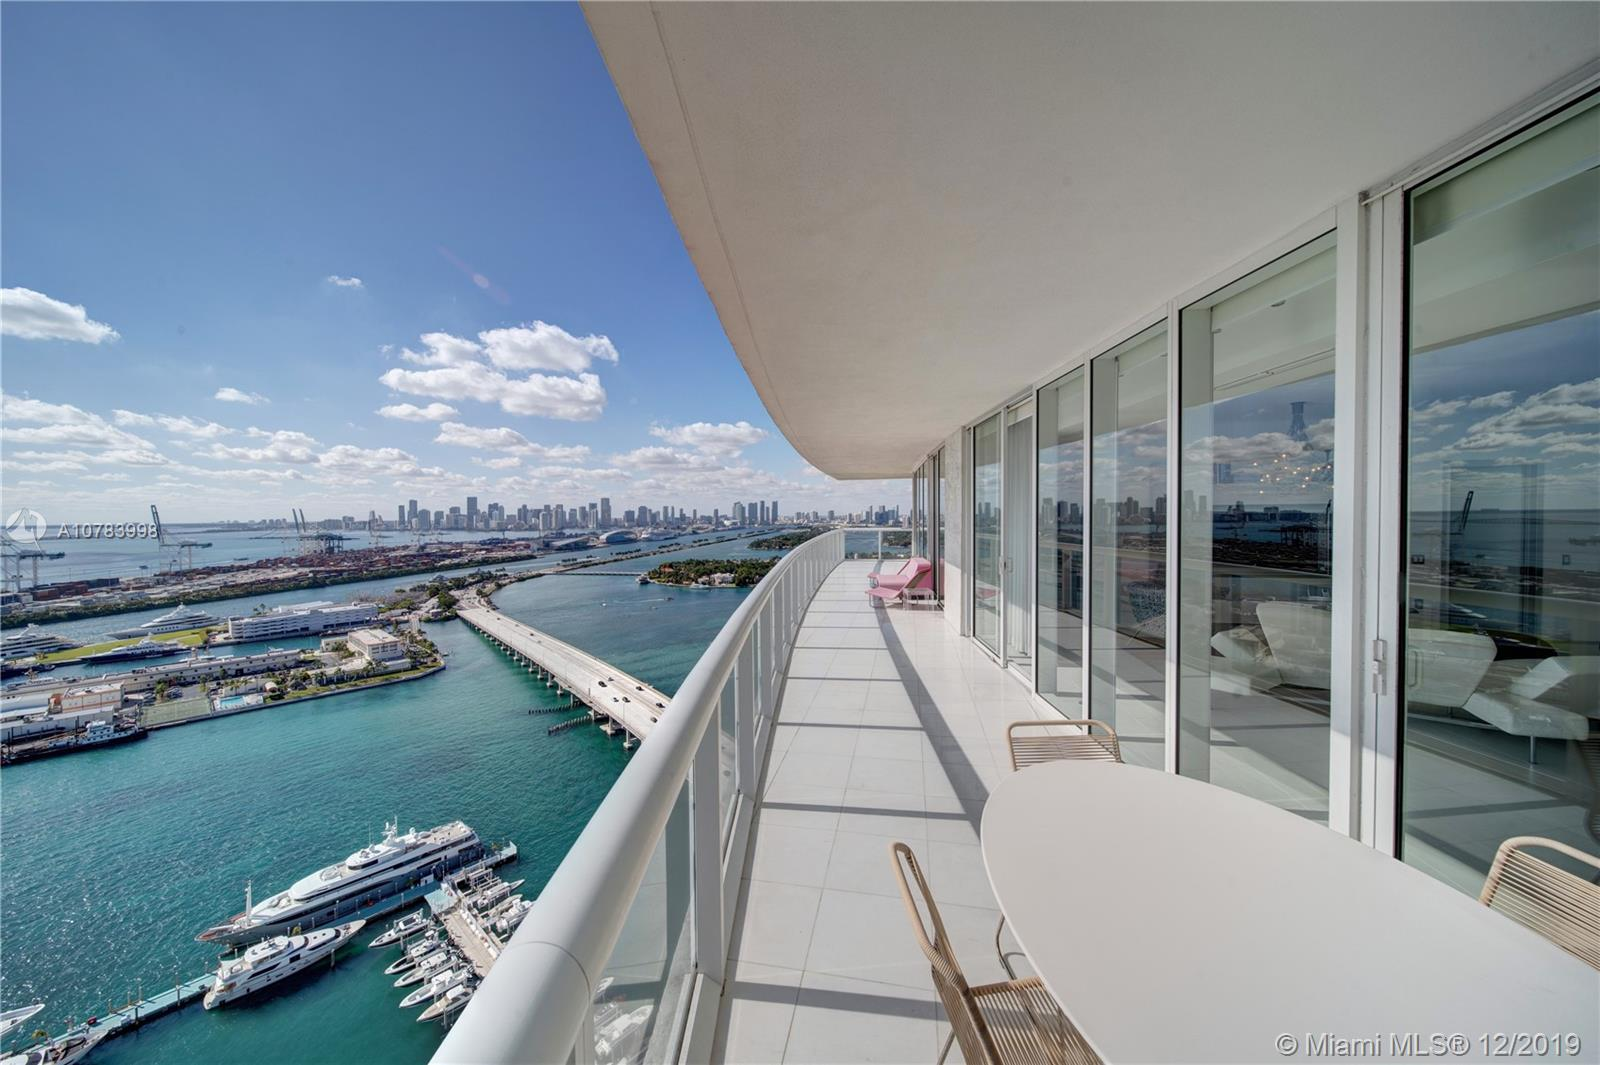 """Truly unique turn key residence at the Icon South Beach: enjoy the most spectacular views of Biscayne Bay and the sunset over the Miami Downtown skyline from this high floor corner 3 bed, 3.5 bathroom with a 797 sq ft wrap around balcony,   the """"01"""" line being the best corner residence  in the building. Luxury amenities include a state of the art spa and gym, a bi-level pool deck with relaxation gardens, outdoor lounges, exquisite italian restaurant, 2 swimming pools, concierge, 24 hr security and much more. Enjoy the the best lifestyle the SoFi neighborhood has to offer with a mega yacht marina, plenty of top restaurants to choose from, a beautiful promenade and South Pointe Park.  Easy to show. Call listing agent"""